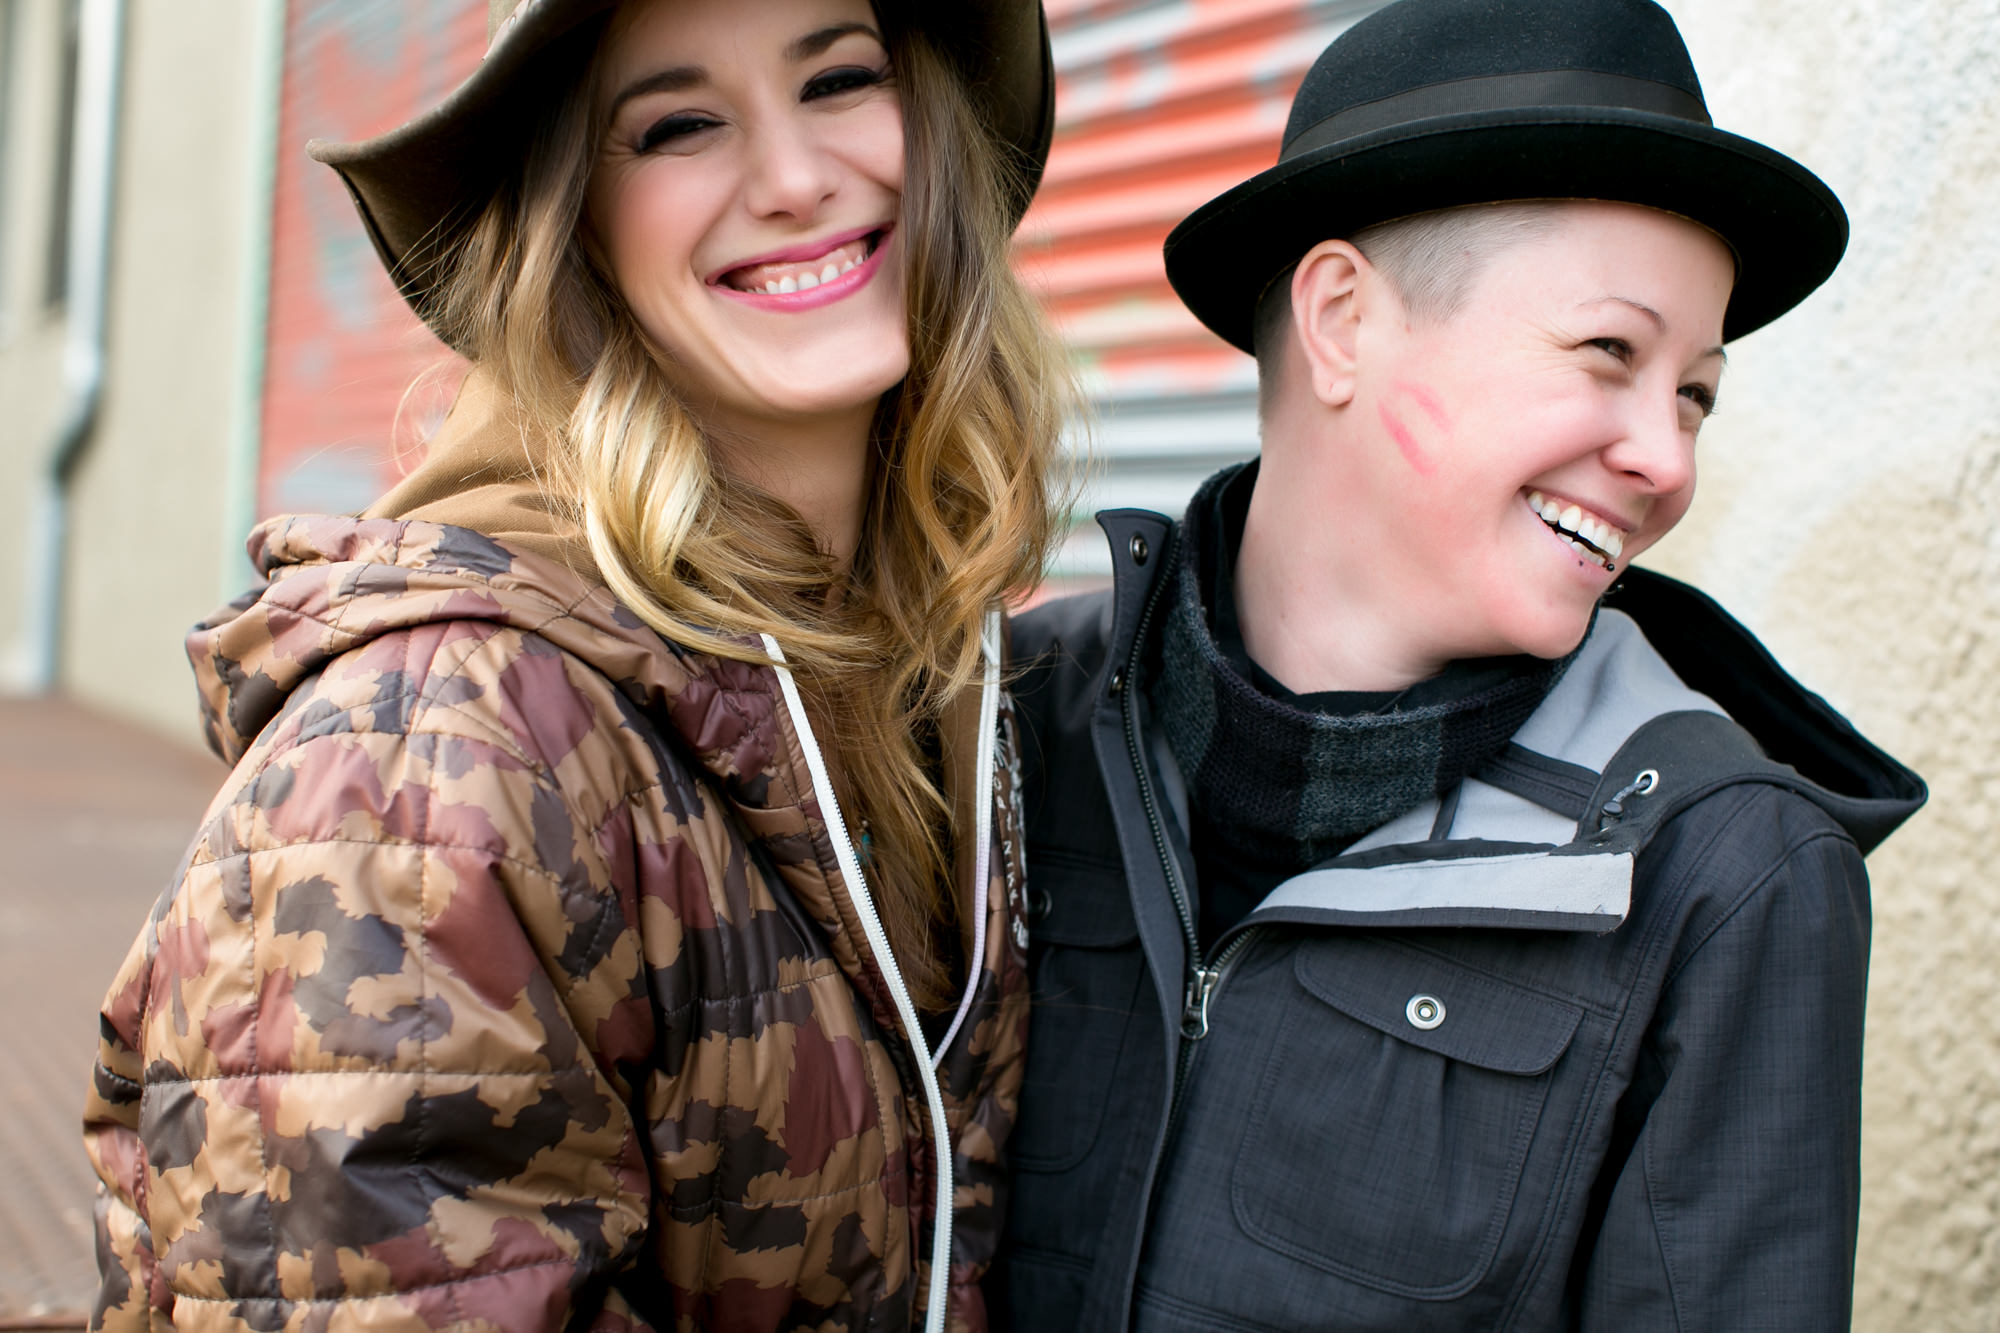 happy-lesbian-couple-woman-with-lip-kiss-stain-on-her-cheek-worlds-best-wedding-photos-jessica-hill-portland-wedding-photographers